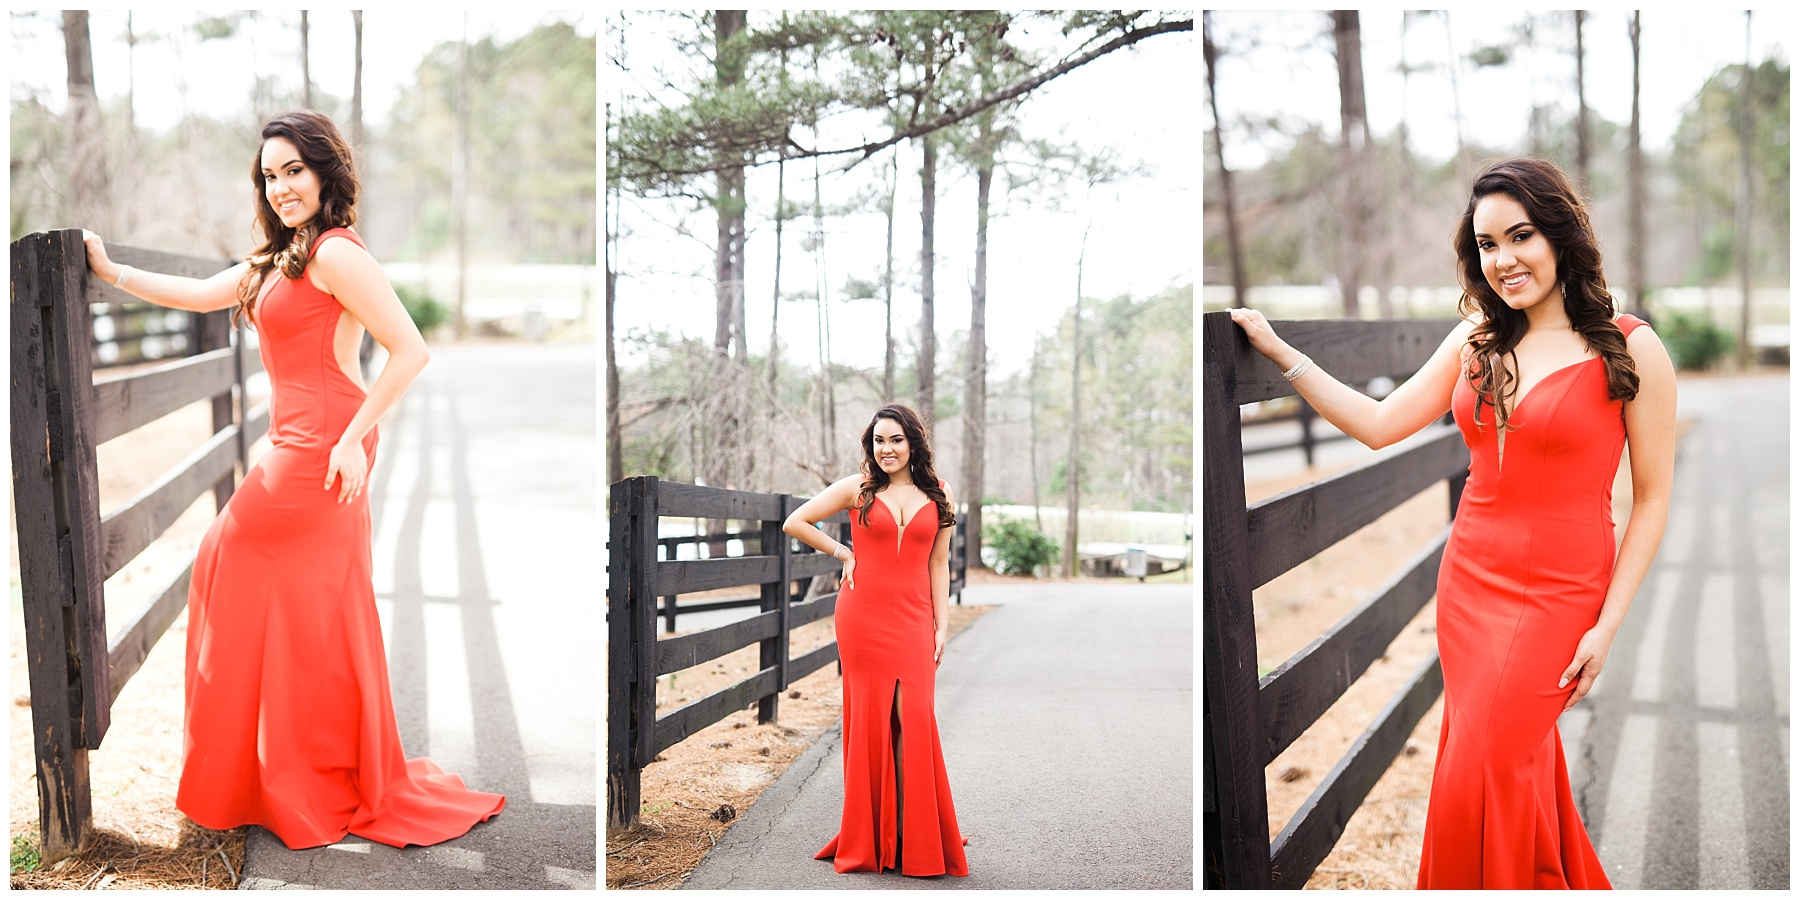 prom atlanta girl red dress